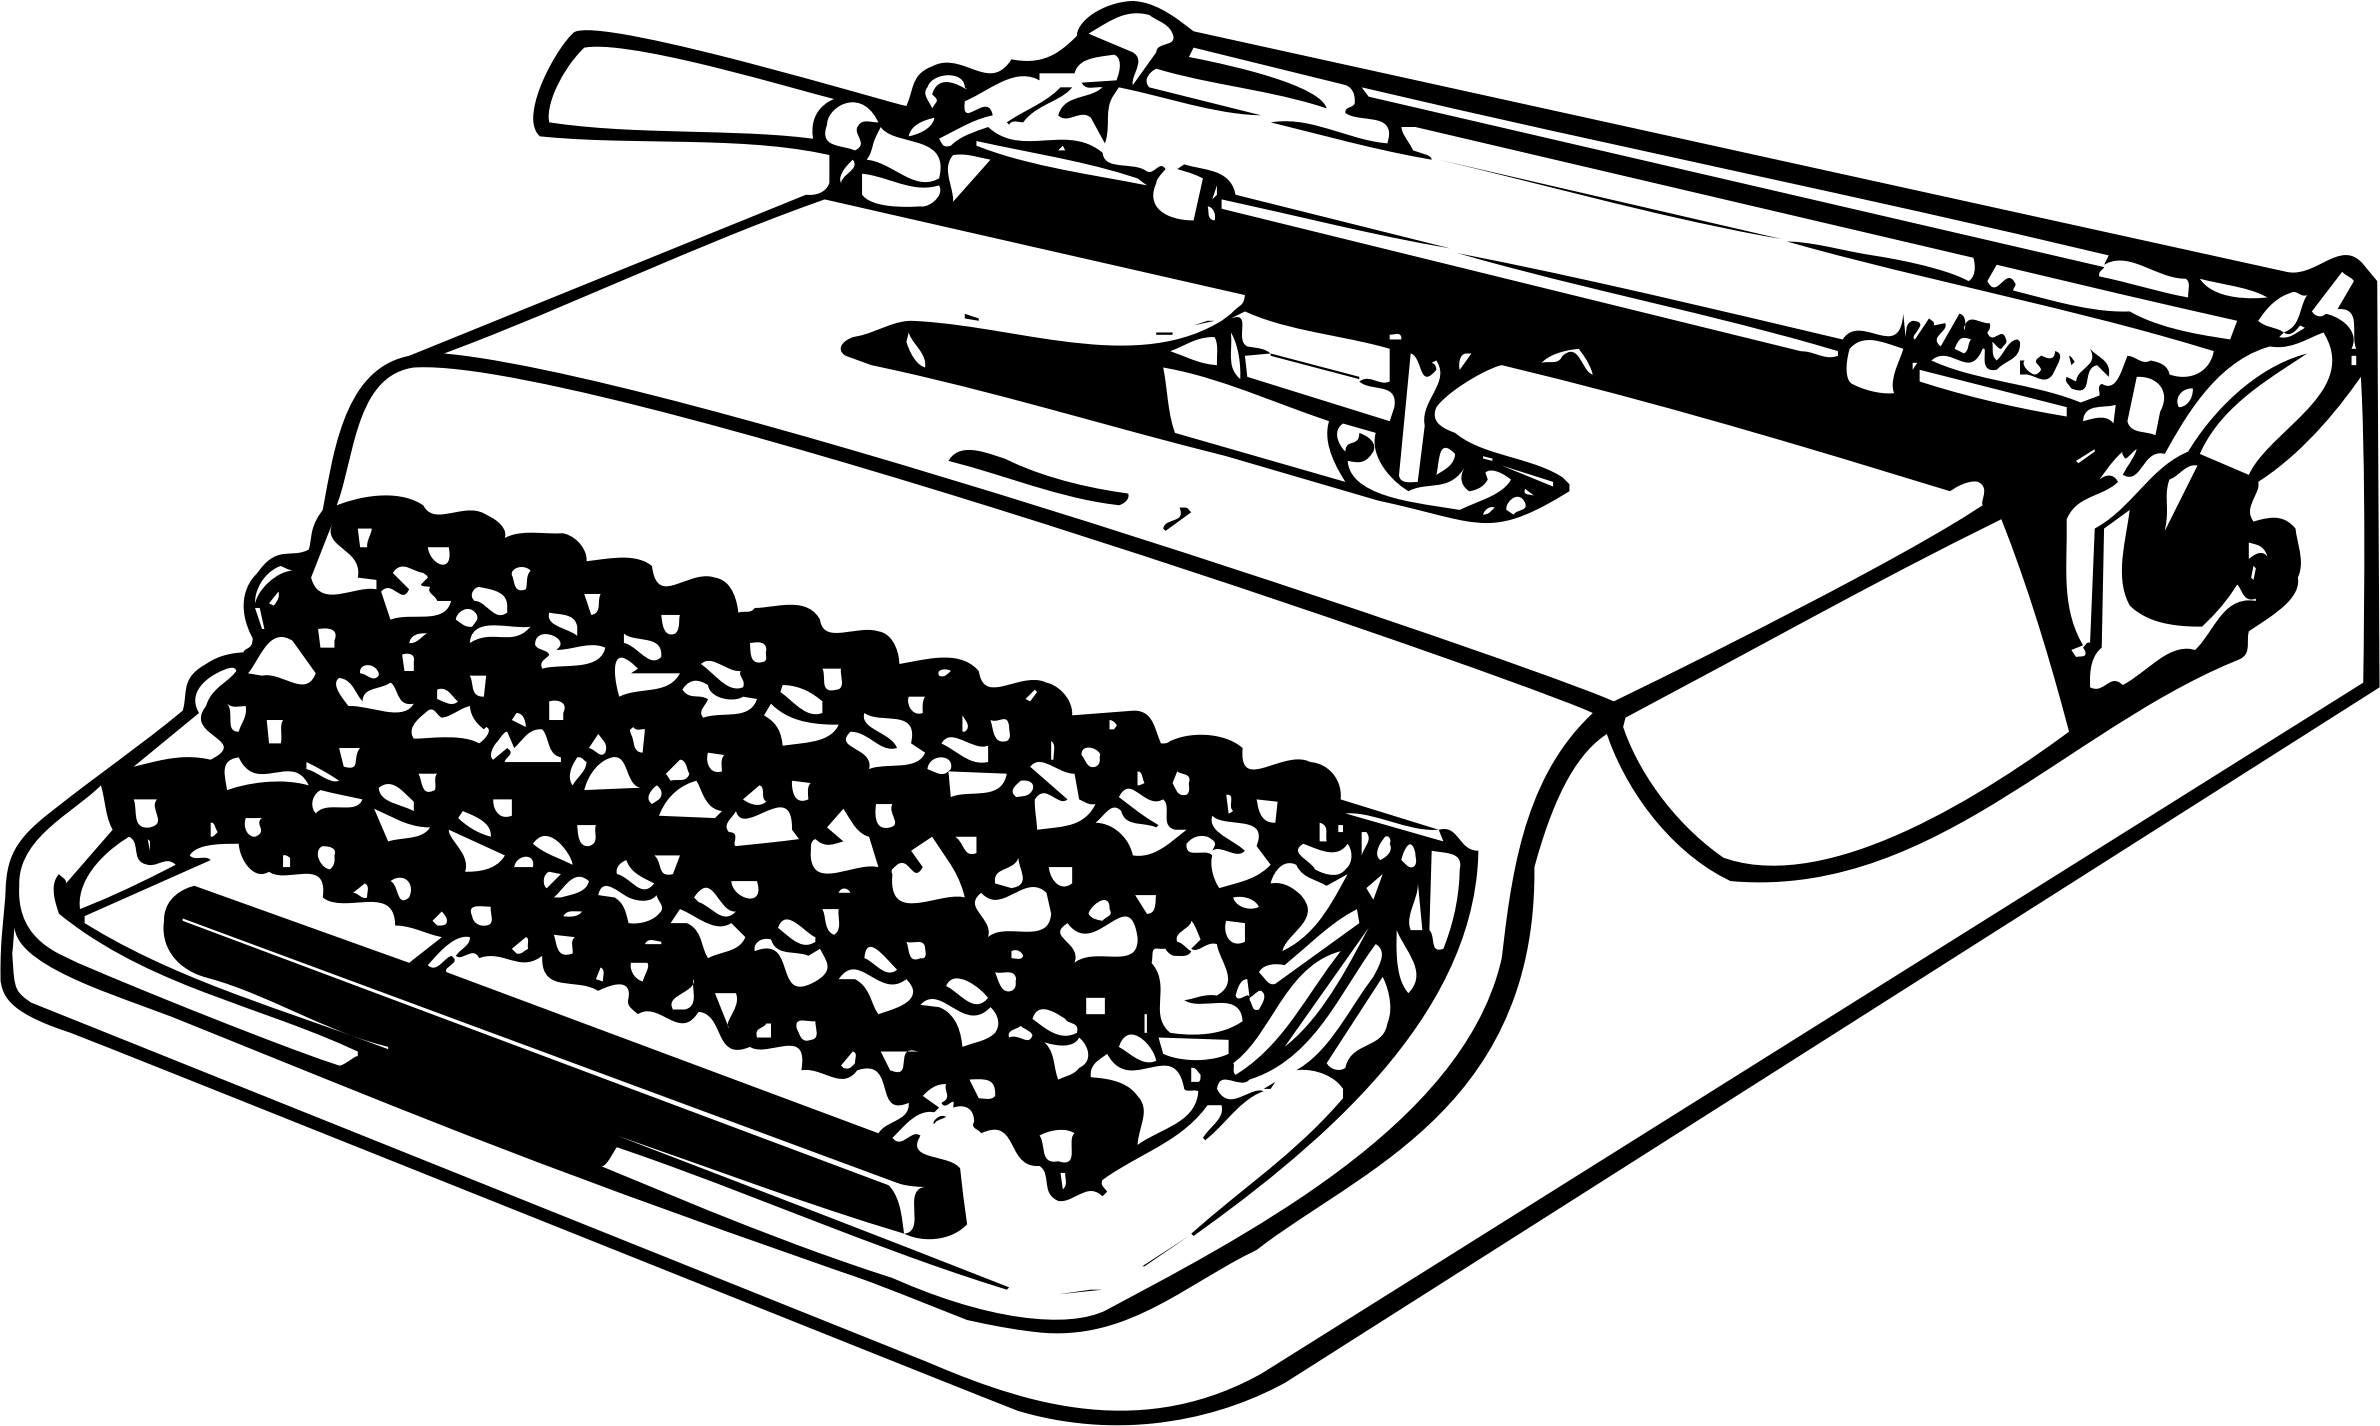 png royalty free library Clipart. Typewriter vector vintage